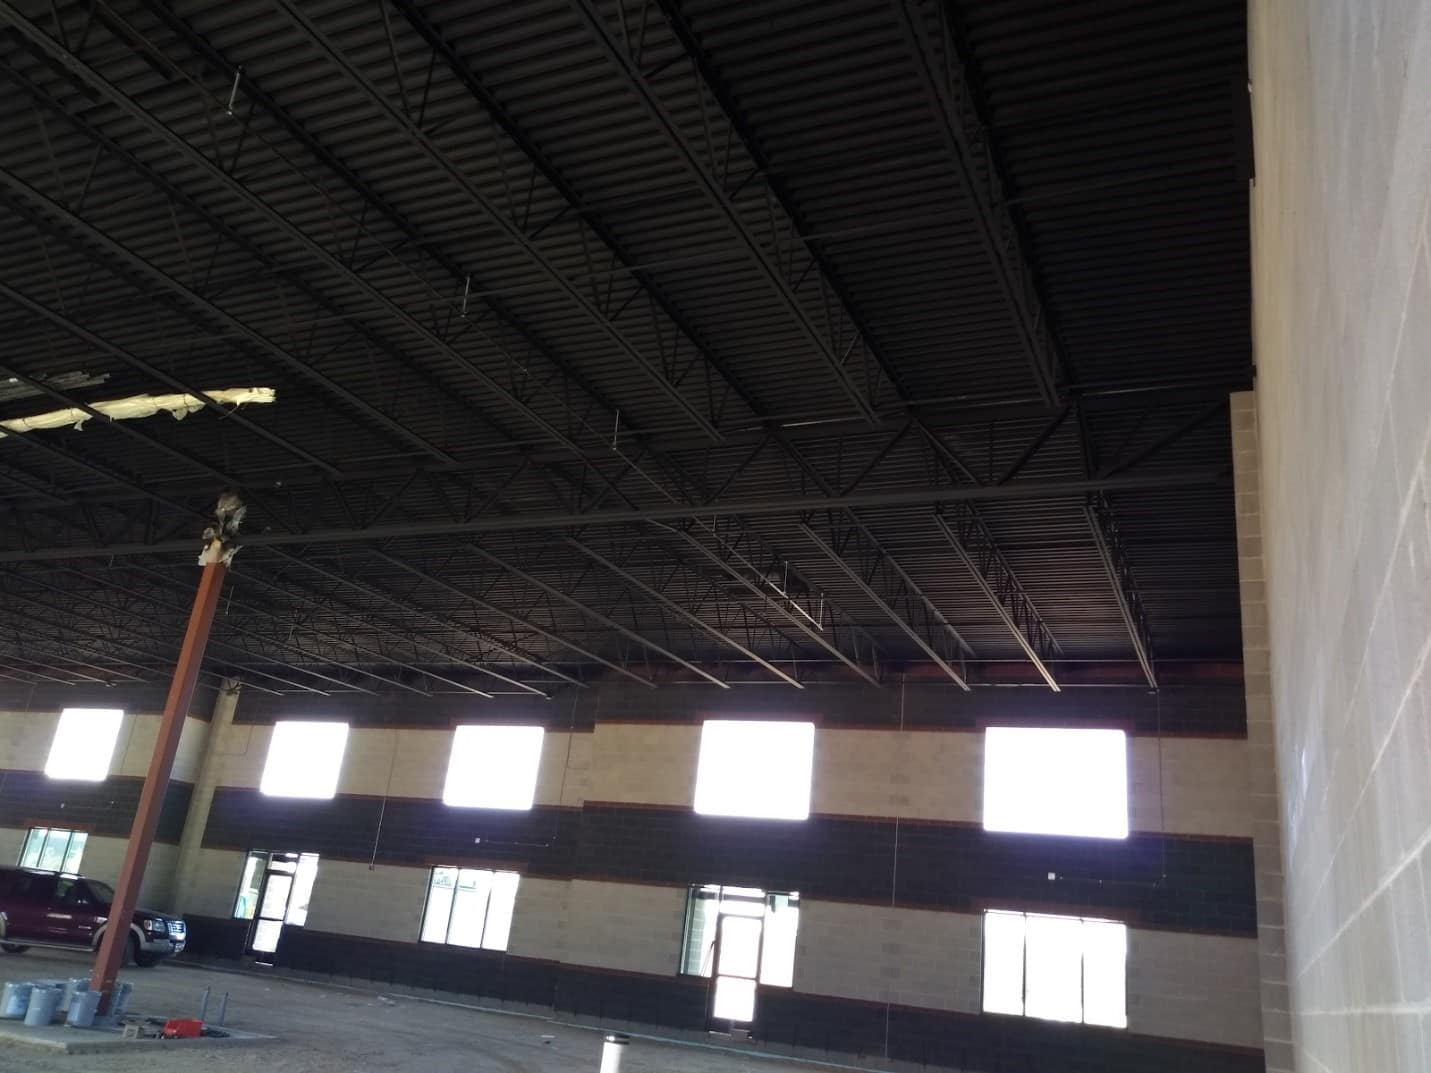 Interior of a large warehouse that needs professional commercial painting